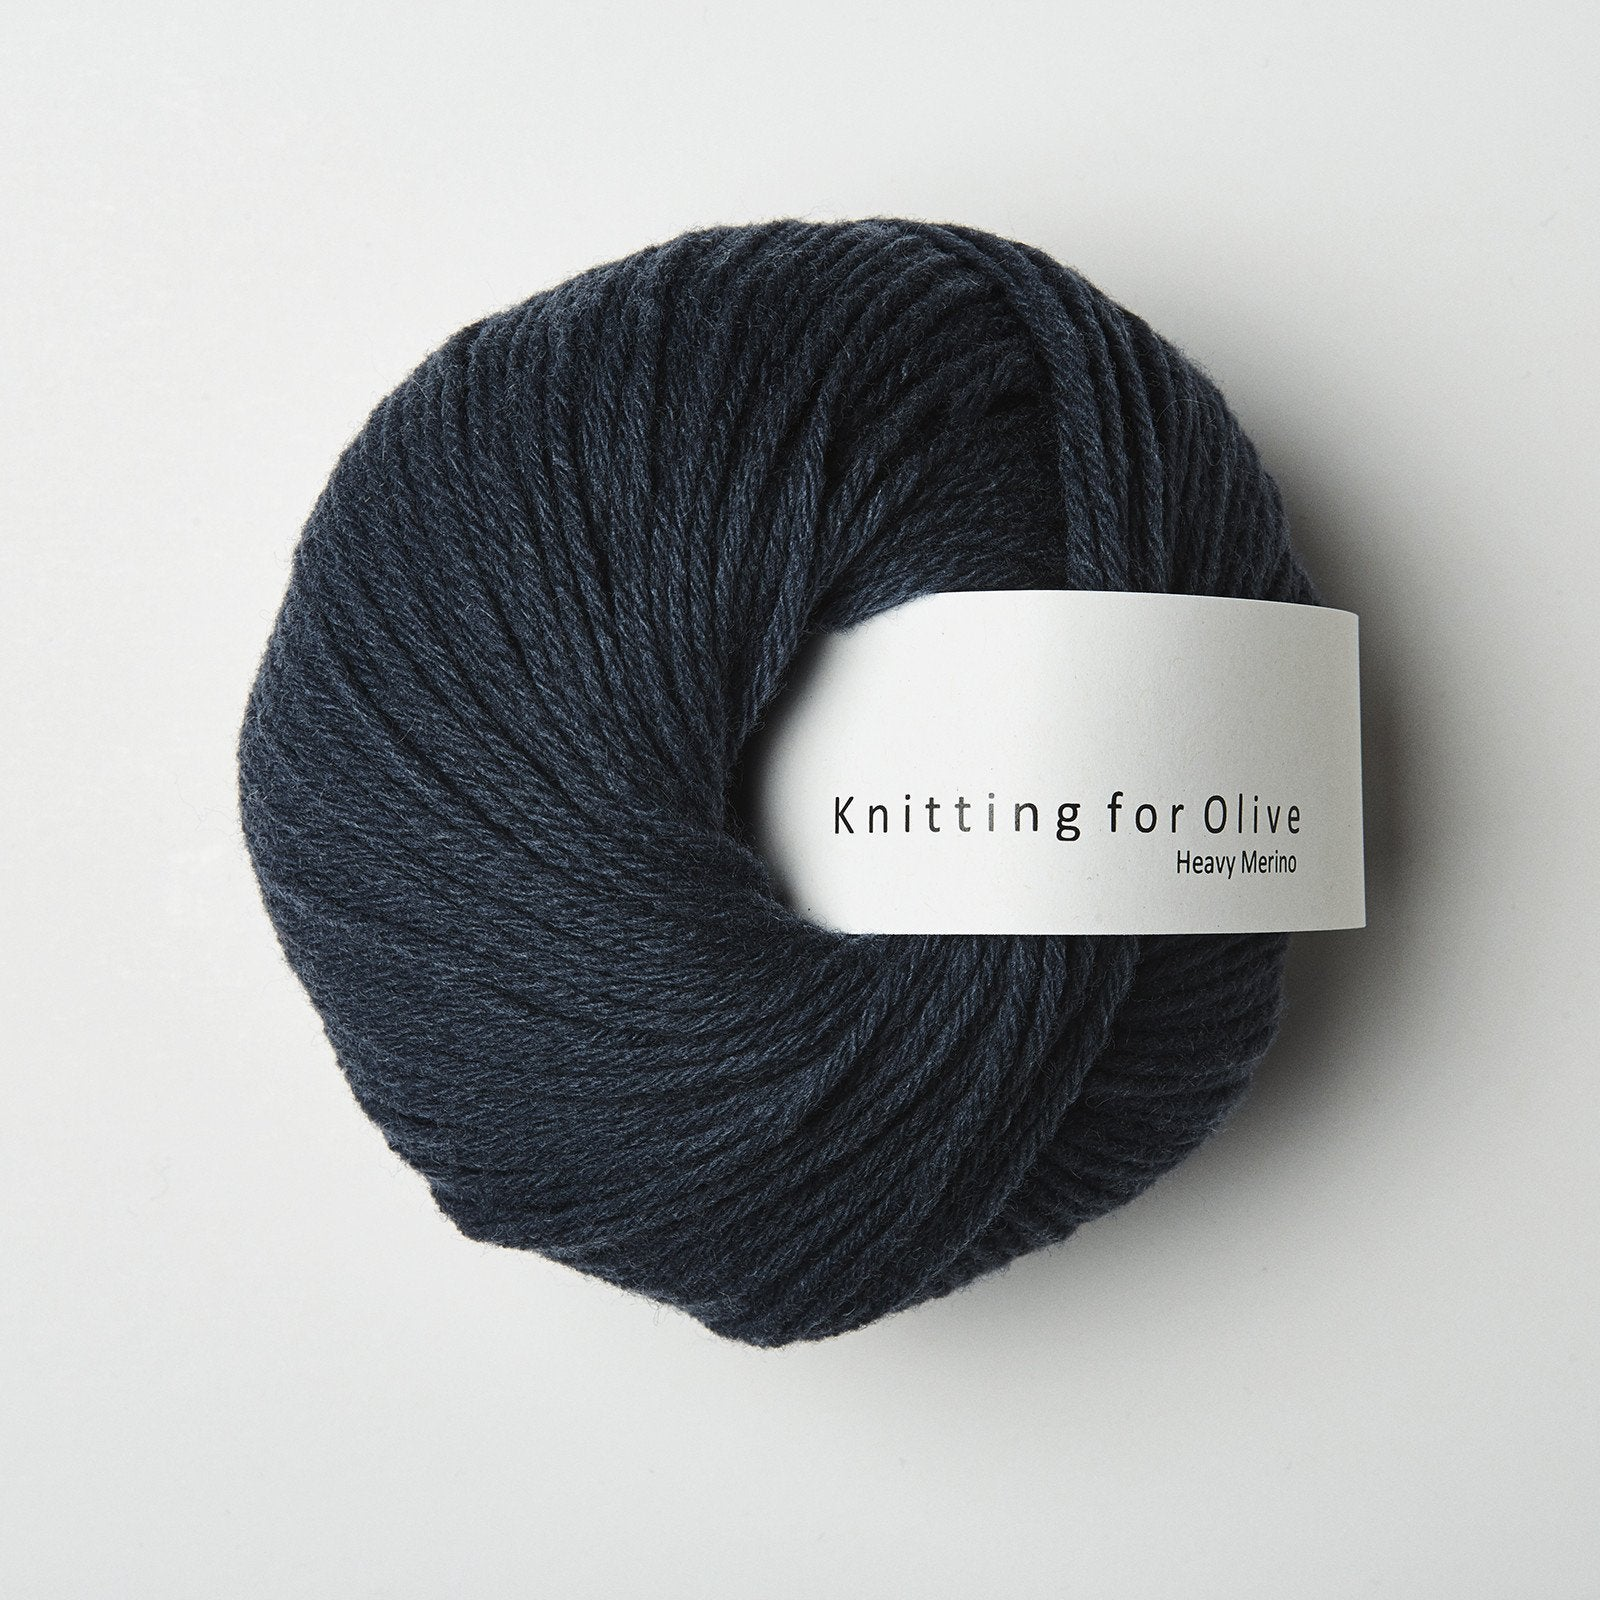 Knitting for Olive HEAVY Merino Dyb Petroleumsblå